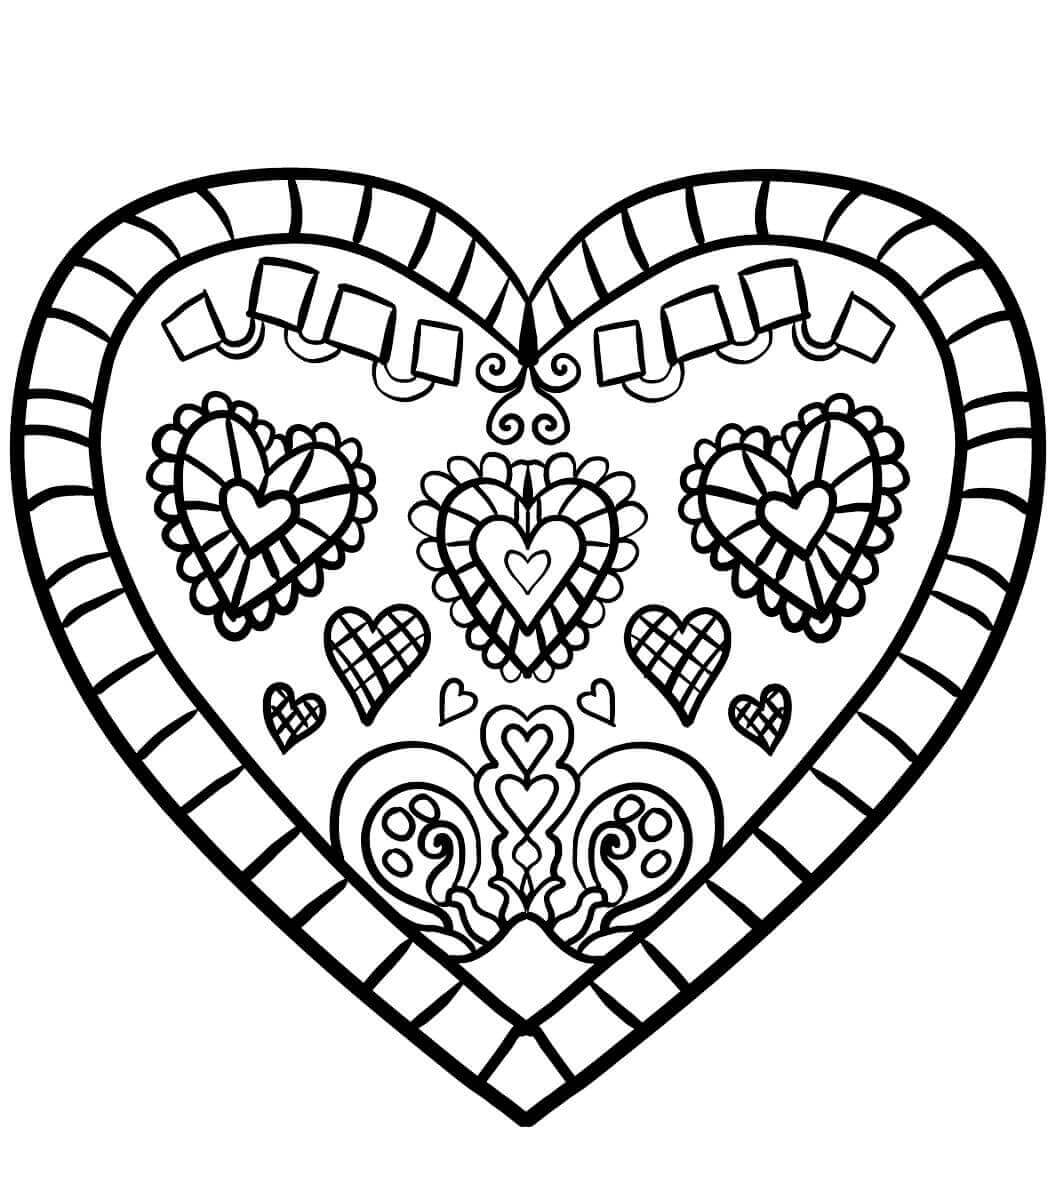 printable hearts coloring pages free printable heart coloring pages for kids printable pages coloring hearts